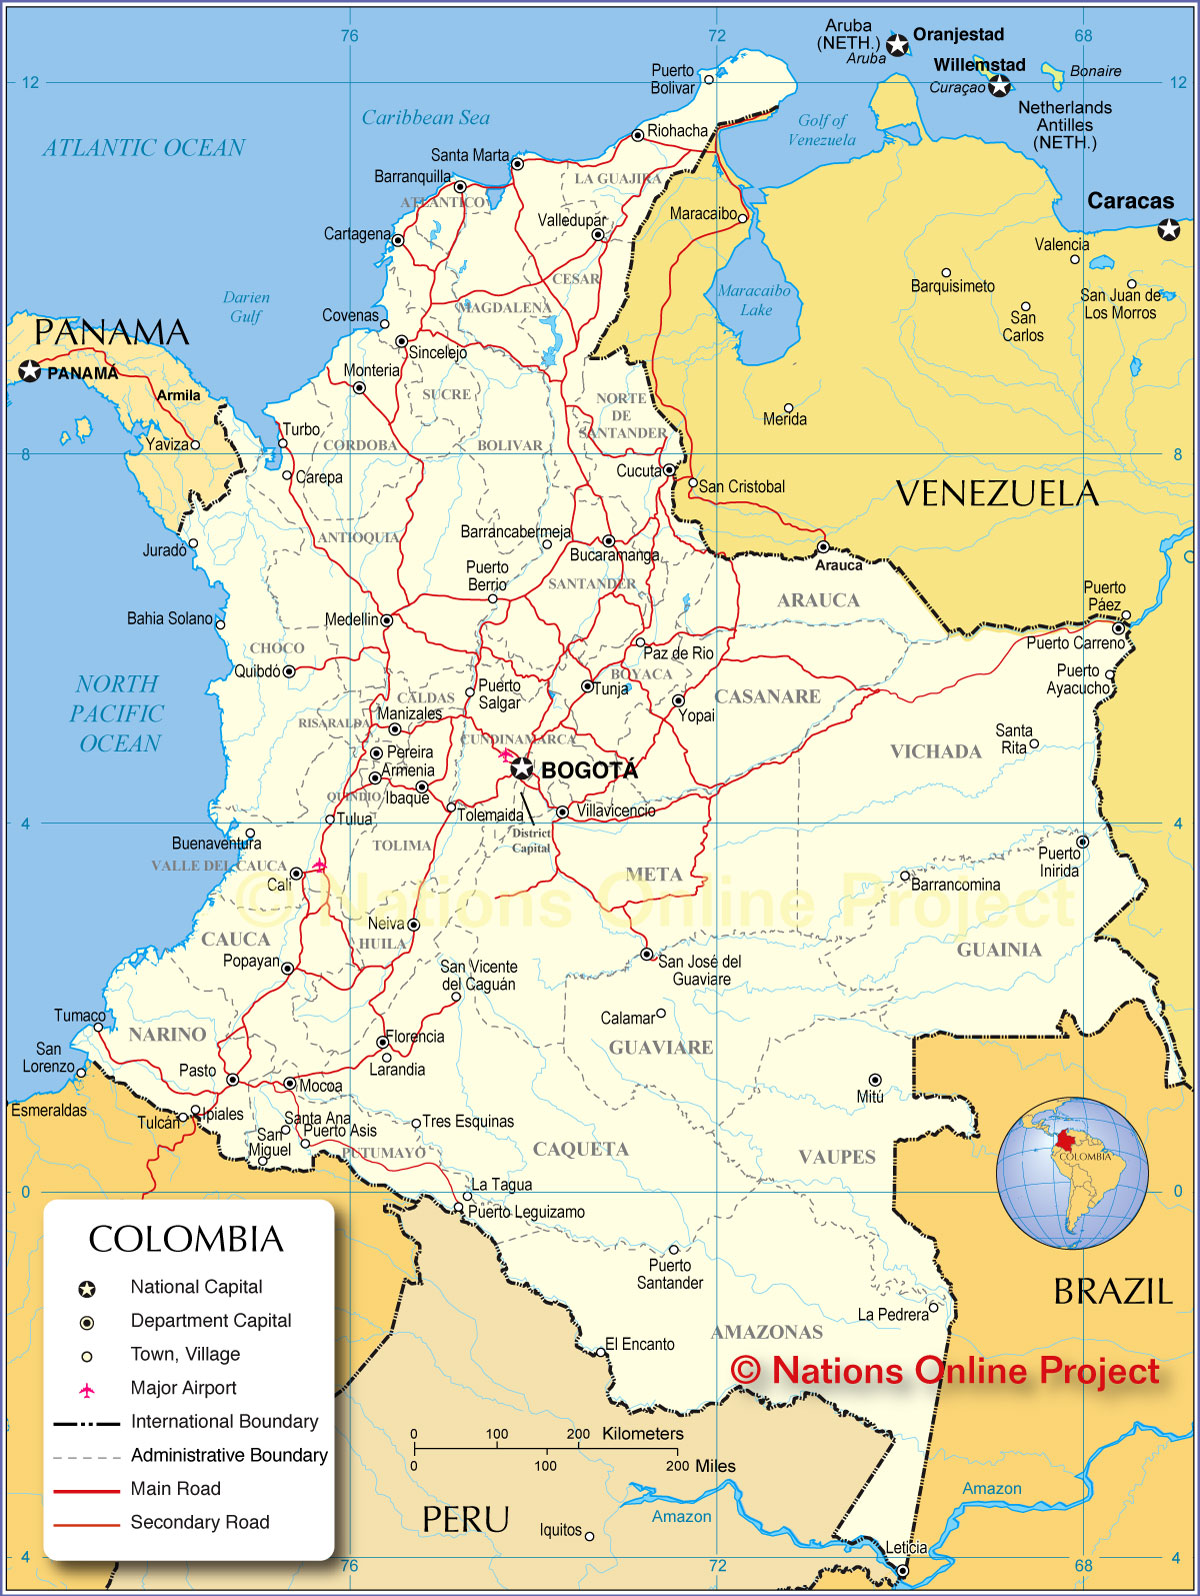 the map of columbia Map Of Colombia Nations Online Project the map of columbia